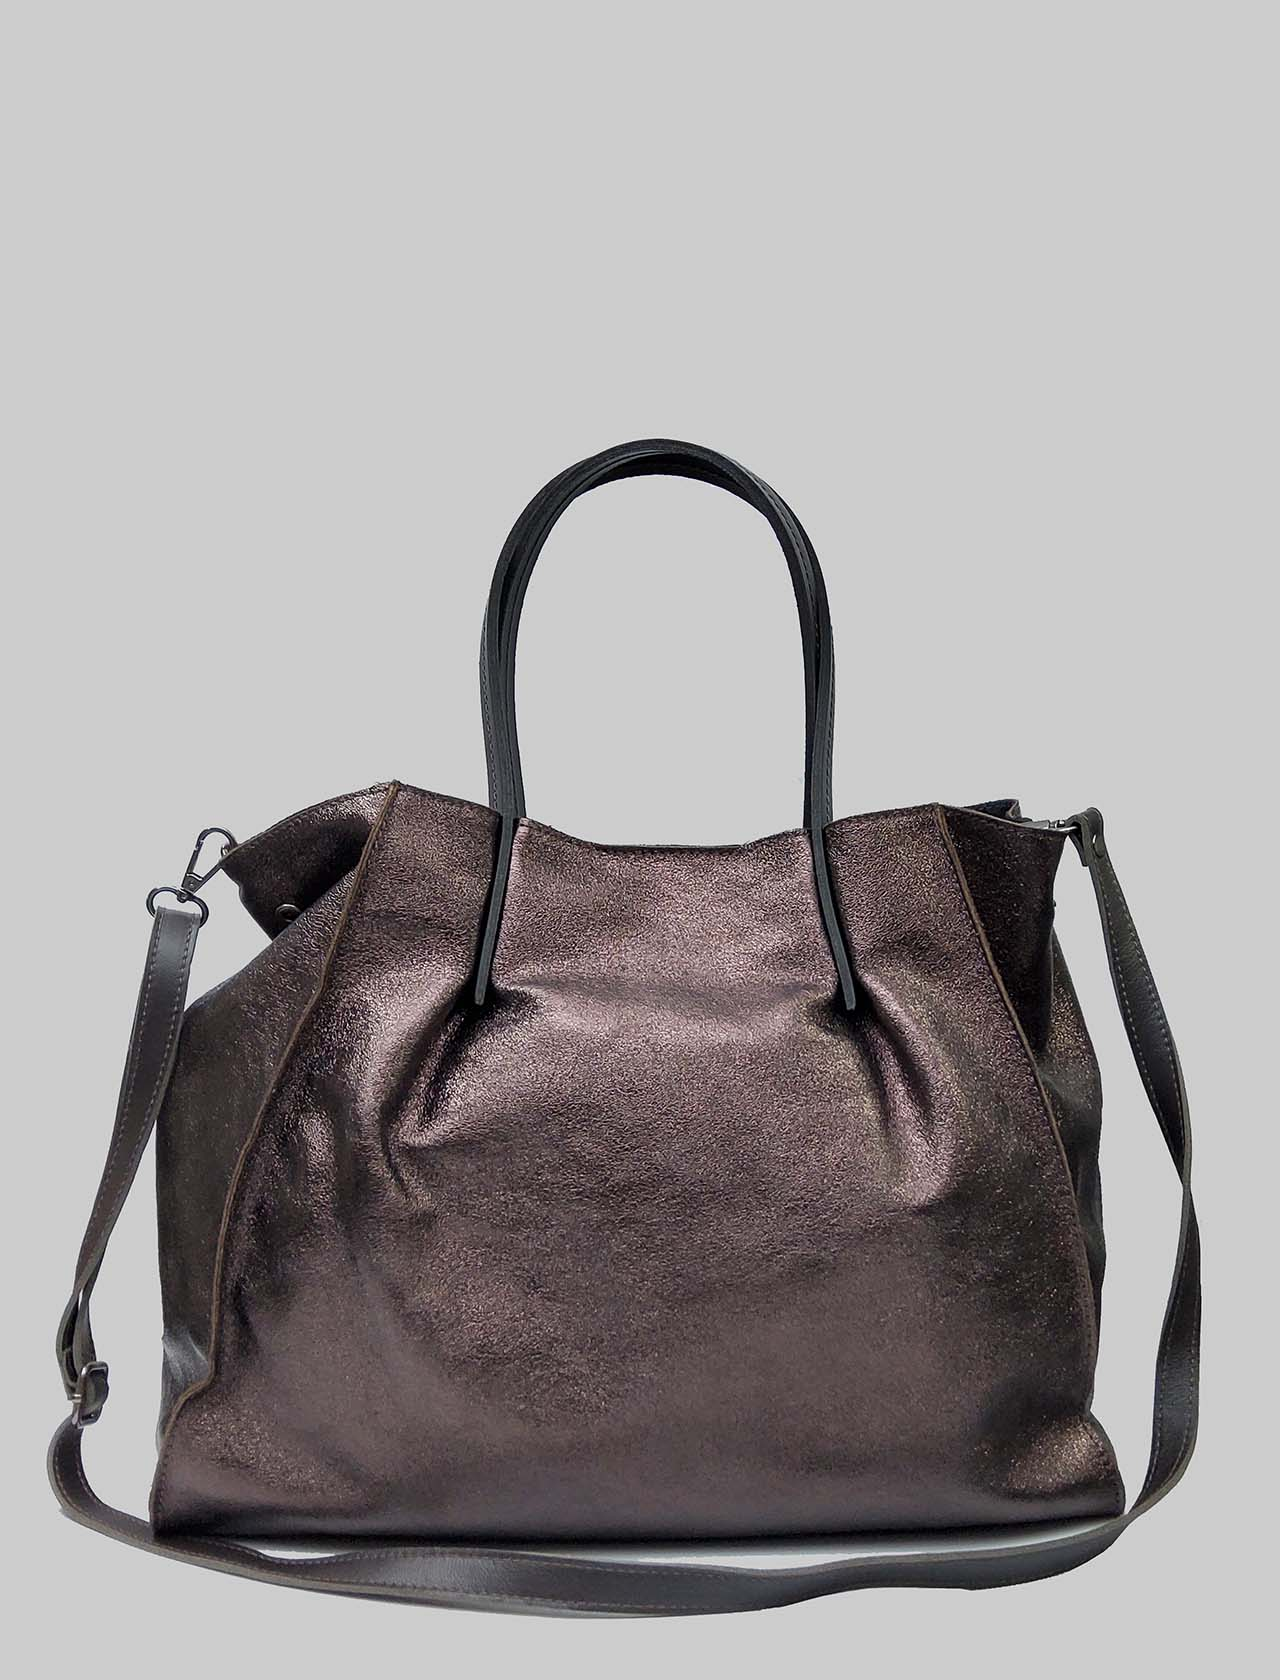 Woman Bags in Bronze Laminated Leather with Double Handles and Removable Shoulder Strap Spatarella | Bags and backpacks | PE0212601